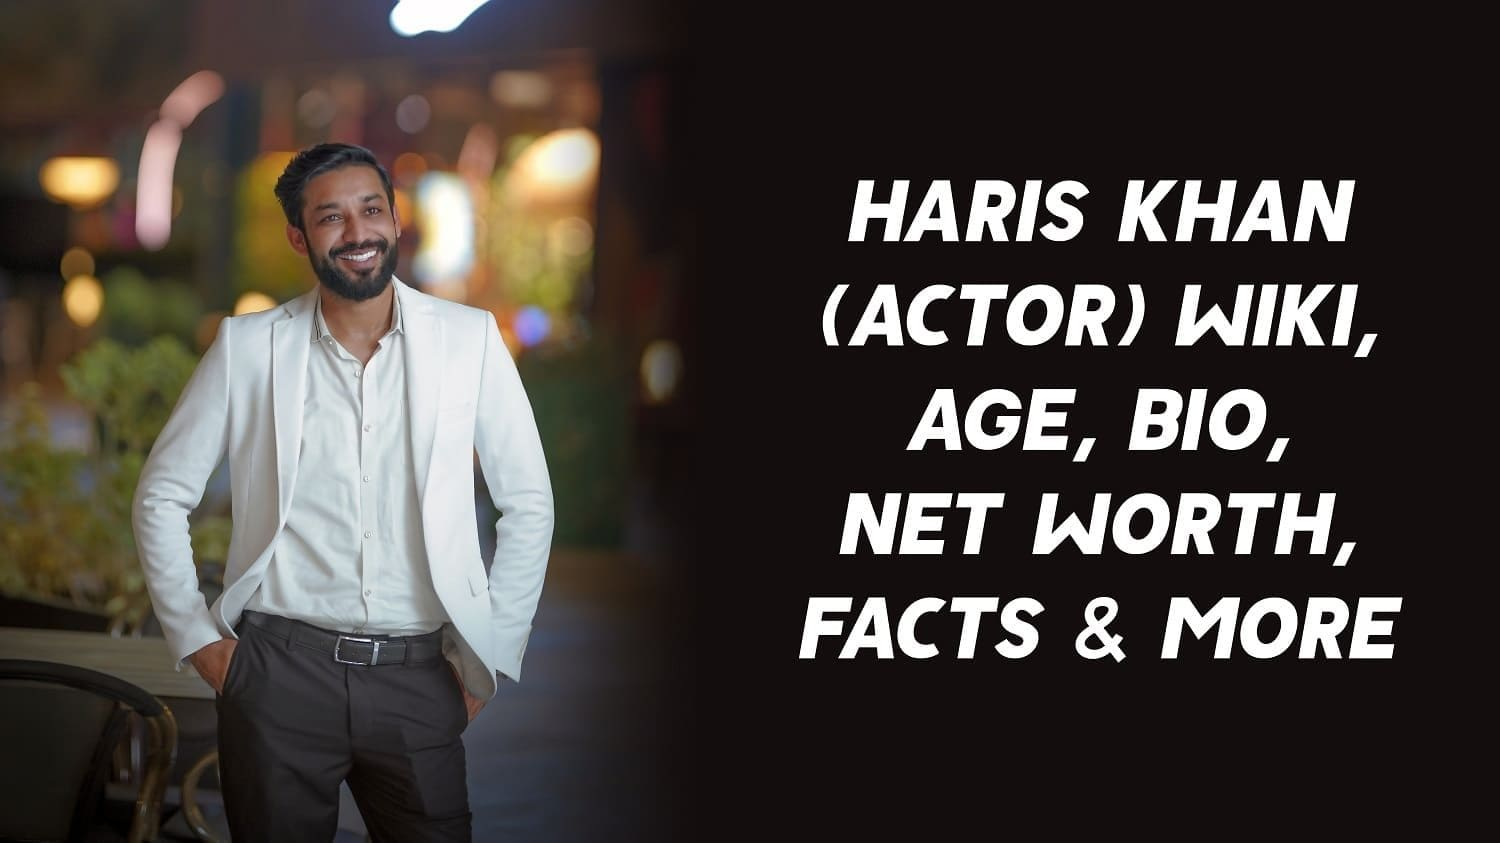 Haris Khan (Actor) Wiki, Age, Bio, Net Worth, Facts & More 1